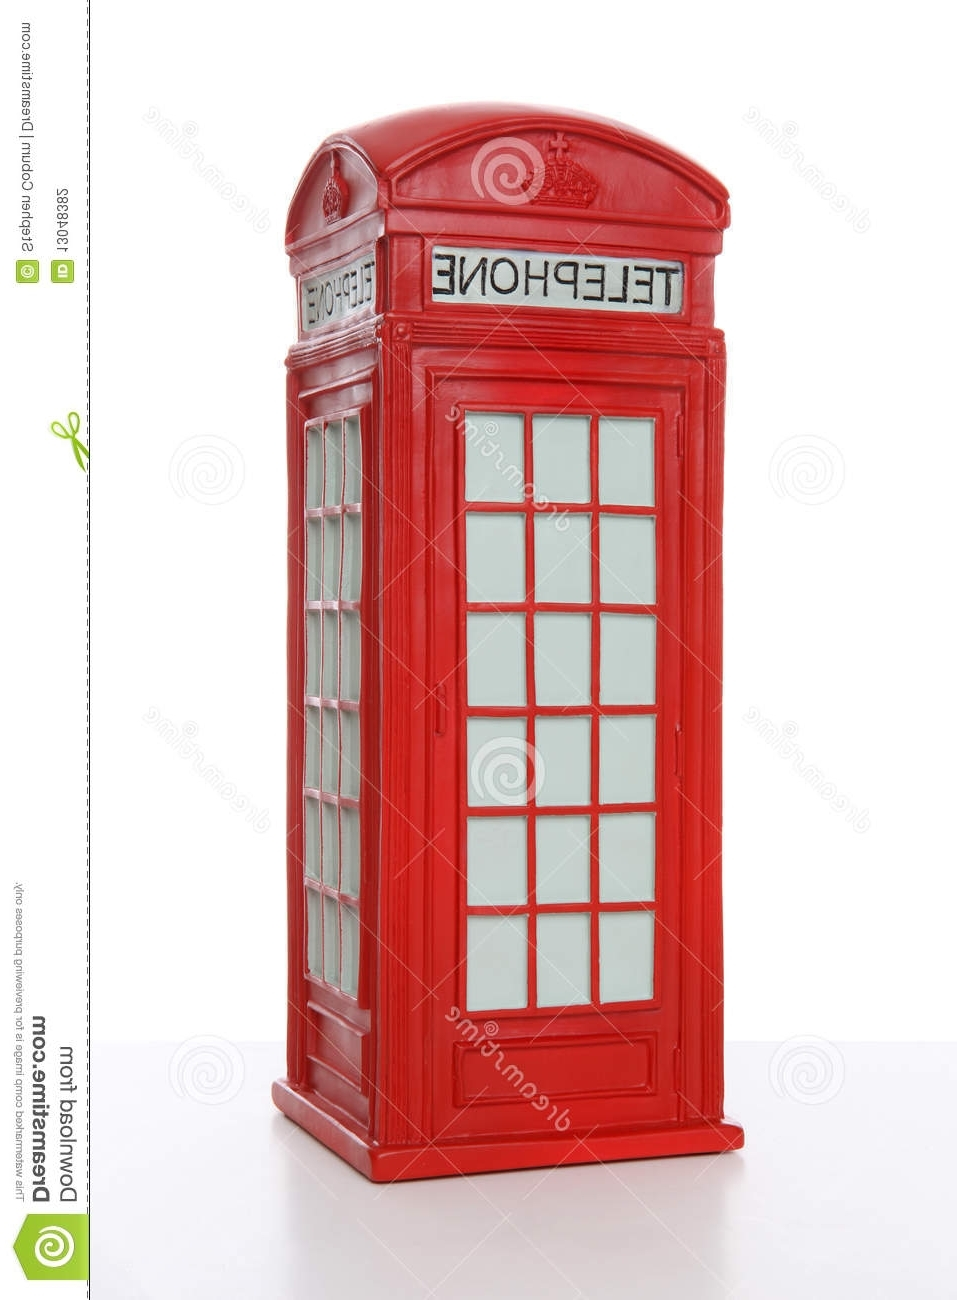 British Red Phone Booth Stock Photo (View 1 of 15)